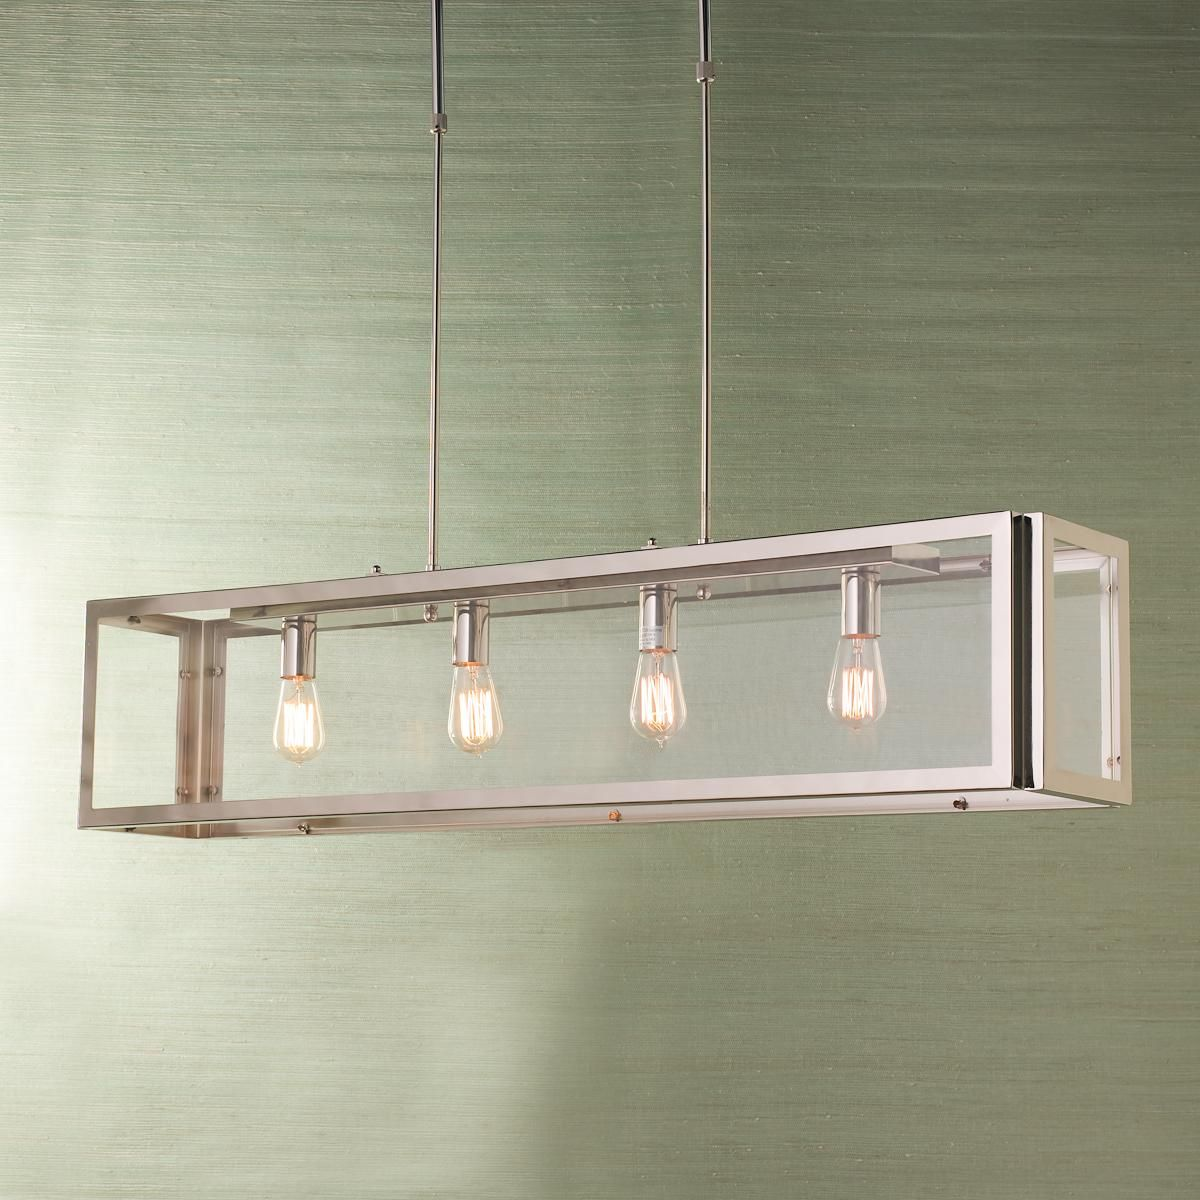 Industrial Modern Island Chandelier Rectangular Light Fixture